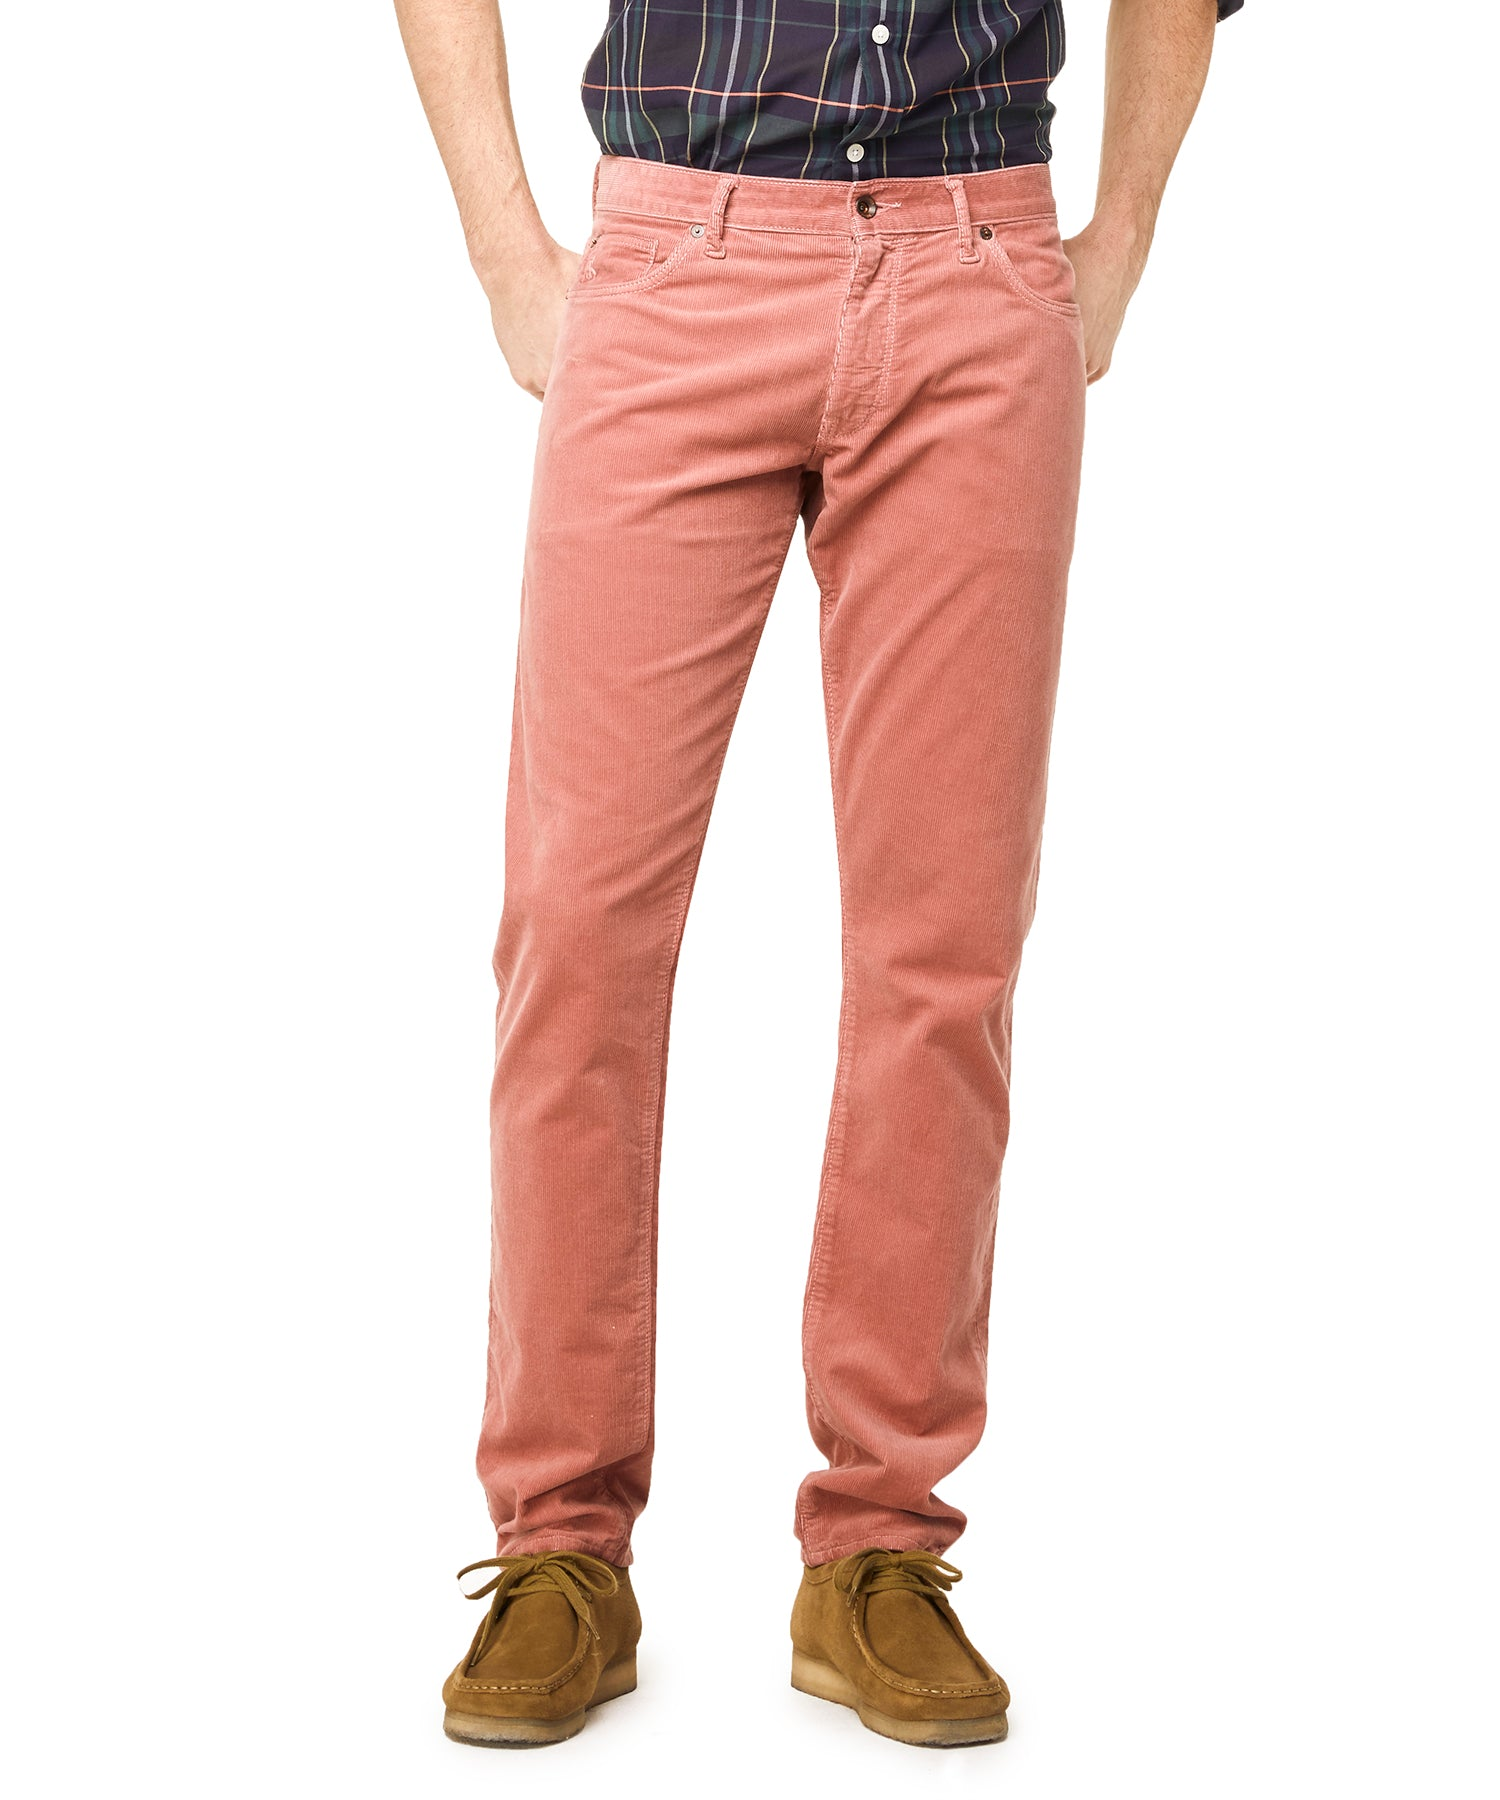 5-Pocket Stretch Italian Cord in Pink